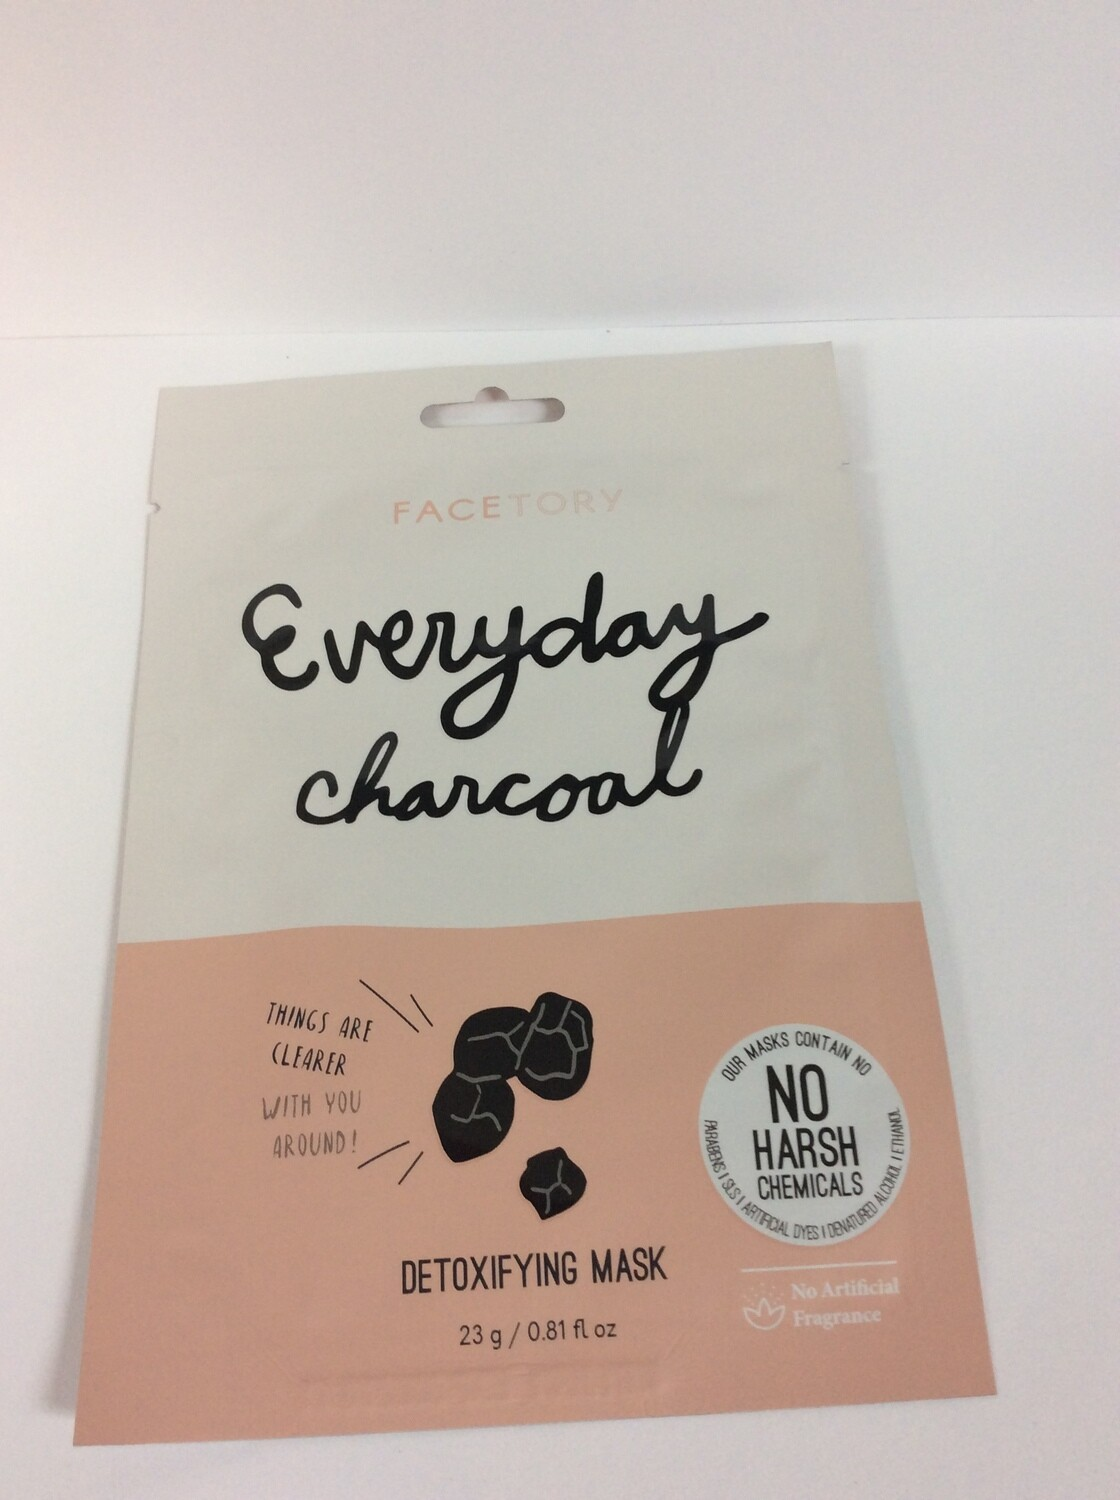 FACETORY Everyday Charcoal mask